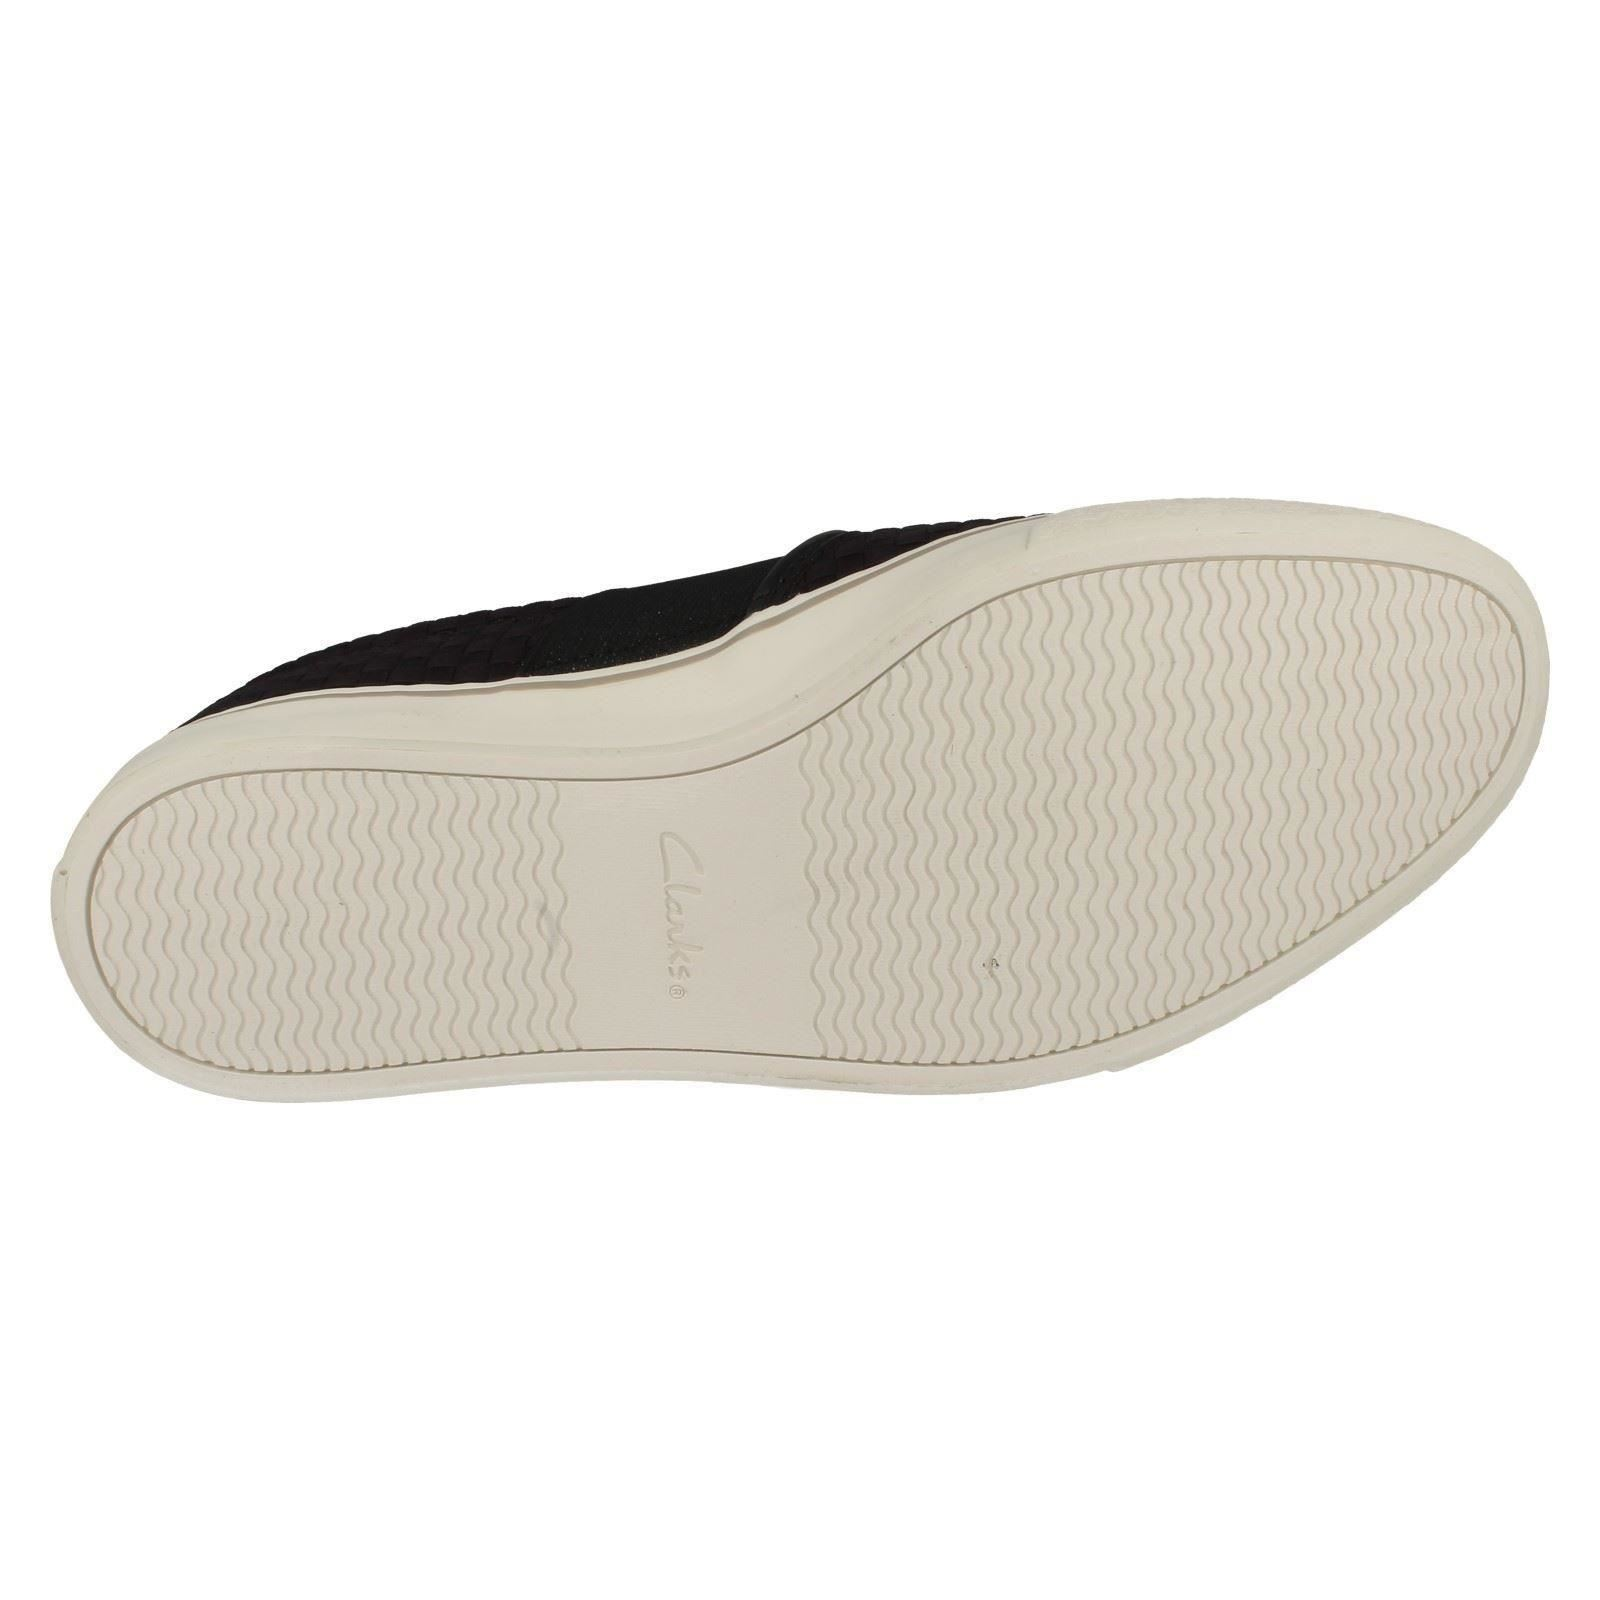 Men's Clarks Slip On Casual Shoes The Style - Gosling Step